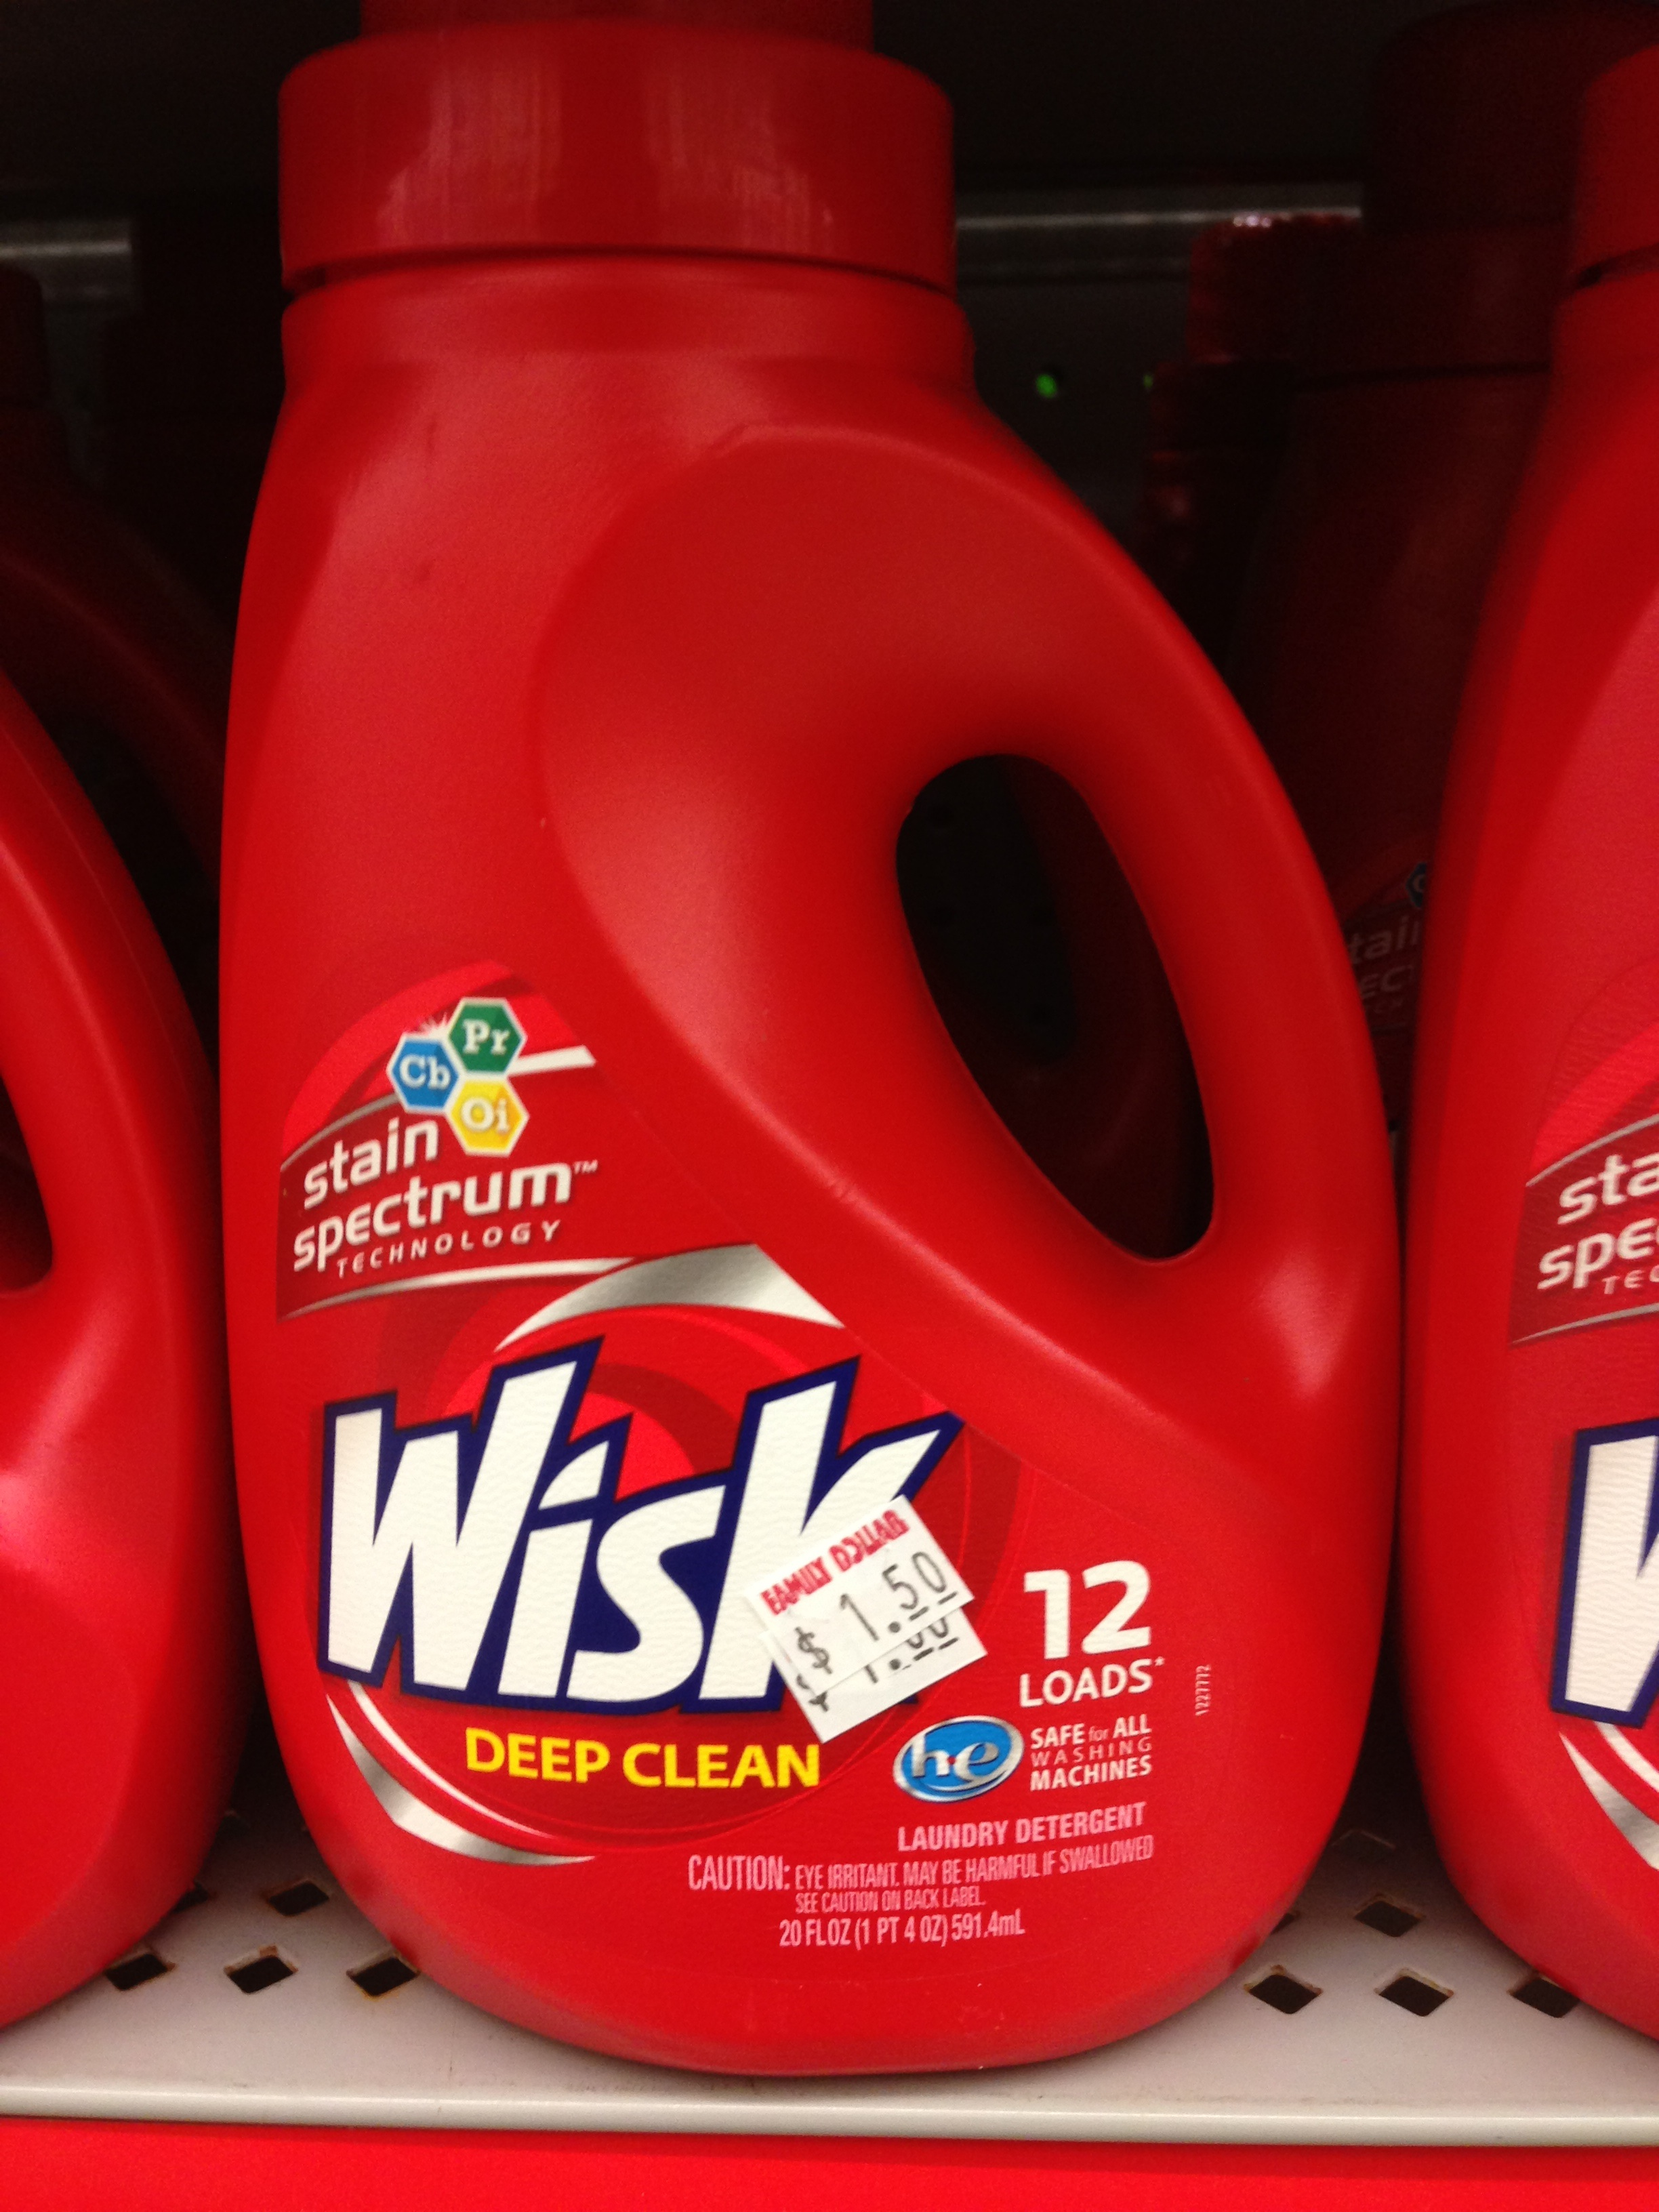 Mesmerizing Family Dollar Dead Possible Free Wisk Detergent At Walgreens Or At Family Dollar Wisk Laundry Detergent Discontinued Wisk Laundry Detergent Amazon houzz 01 Wisk Laundry Detergent